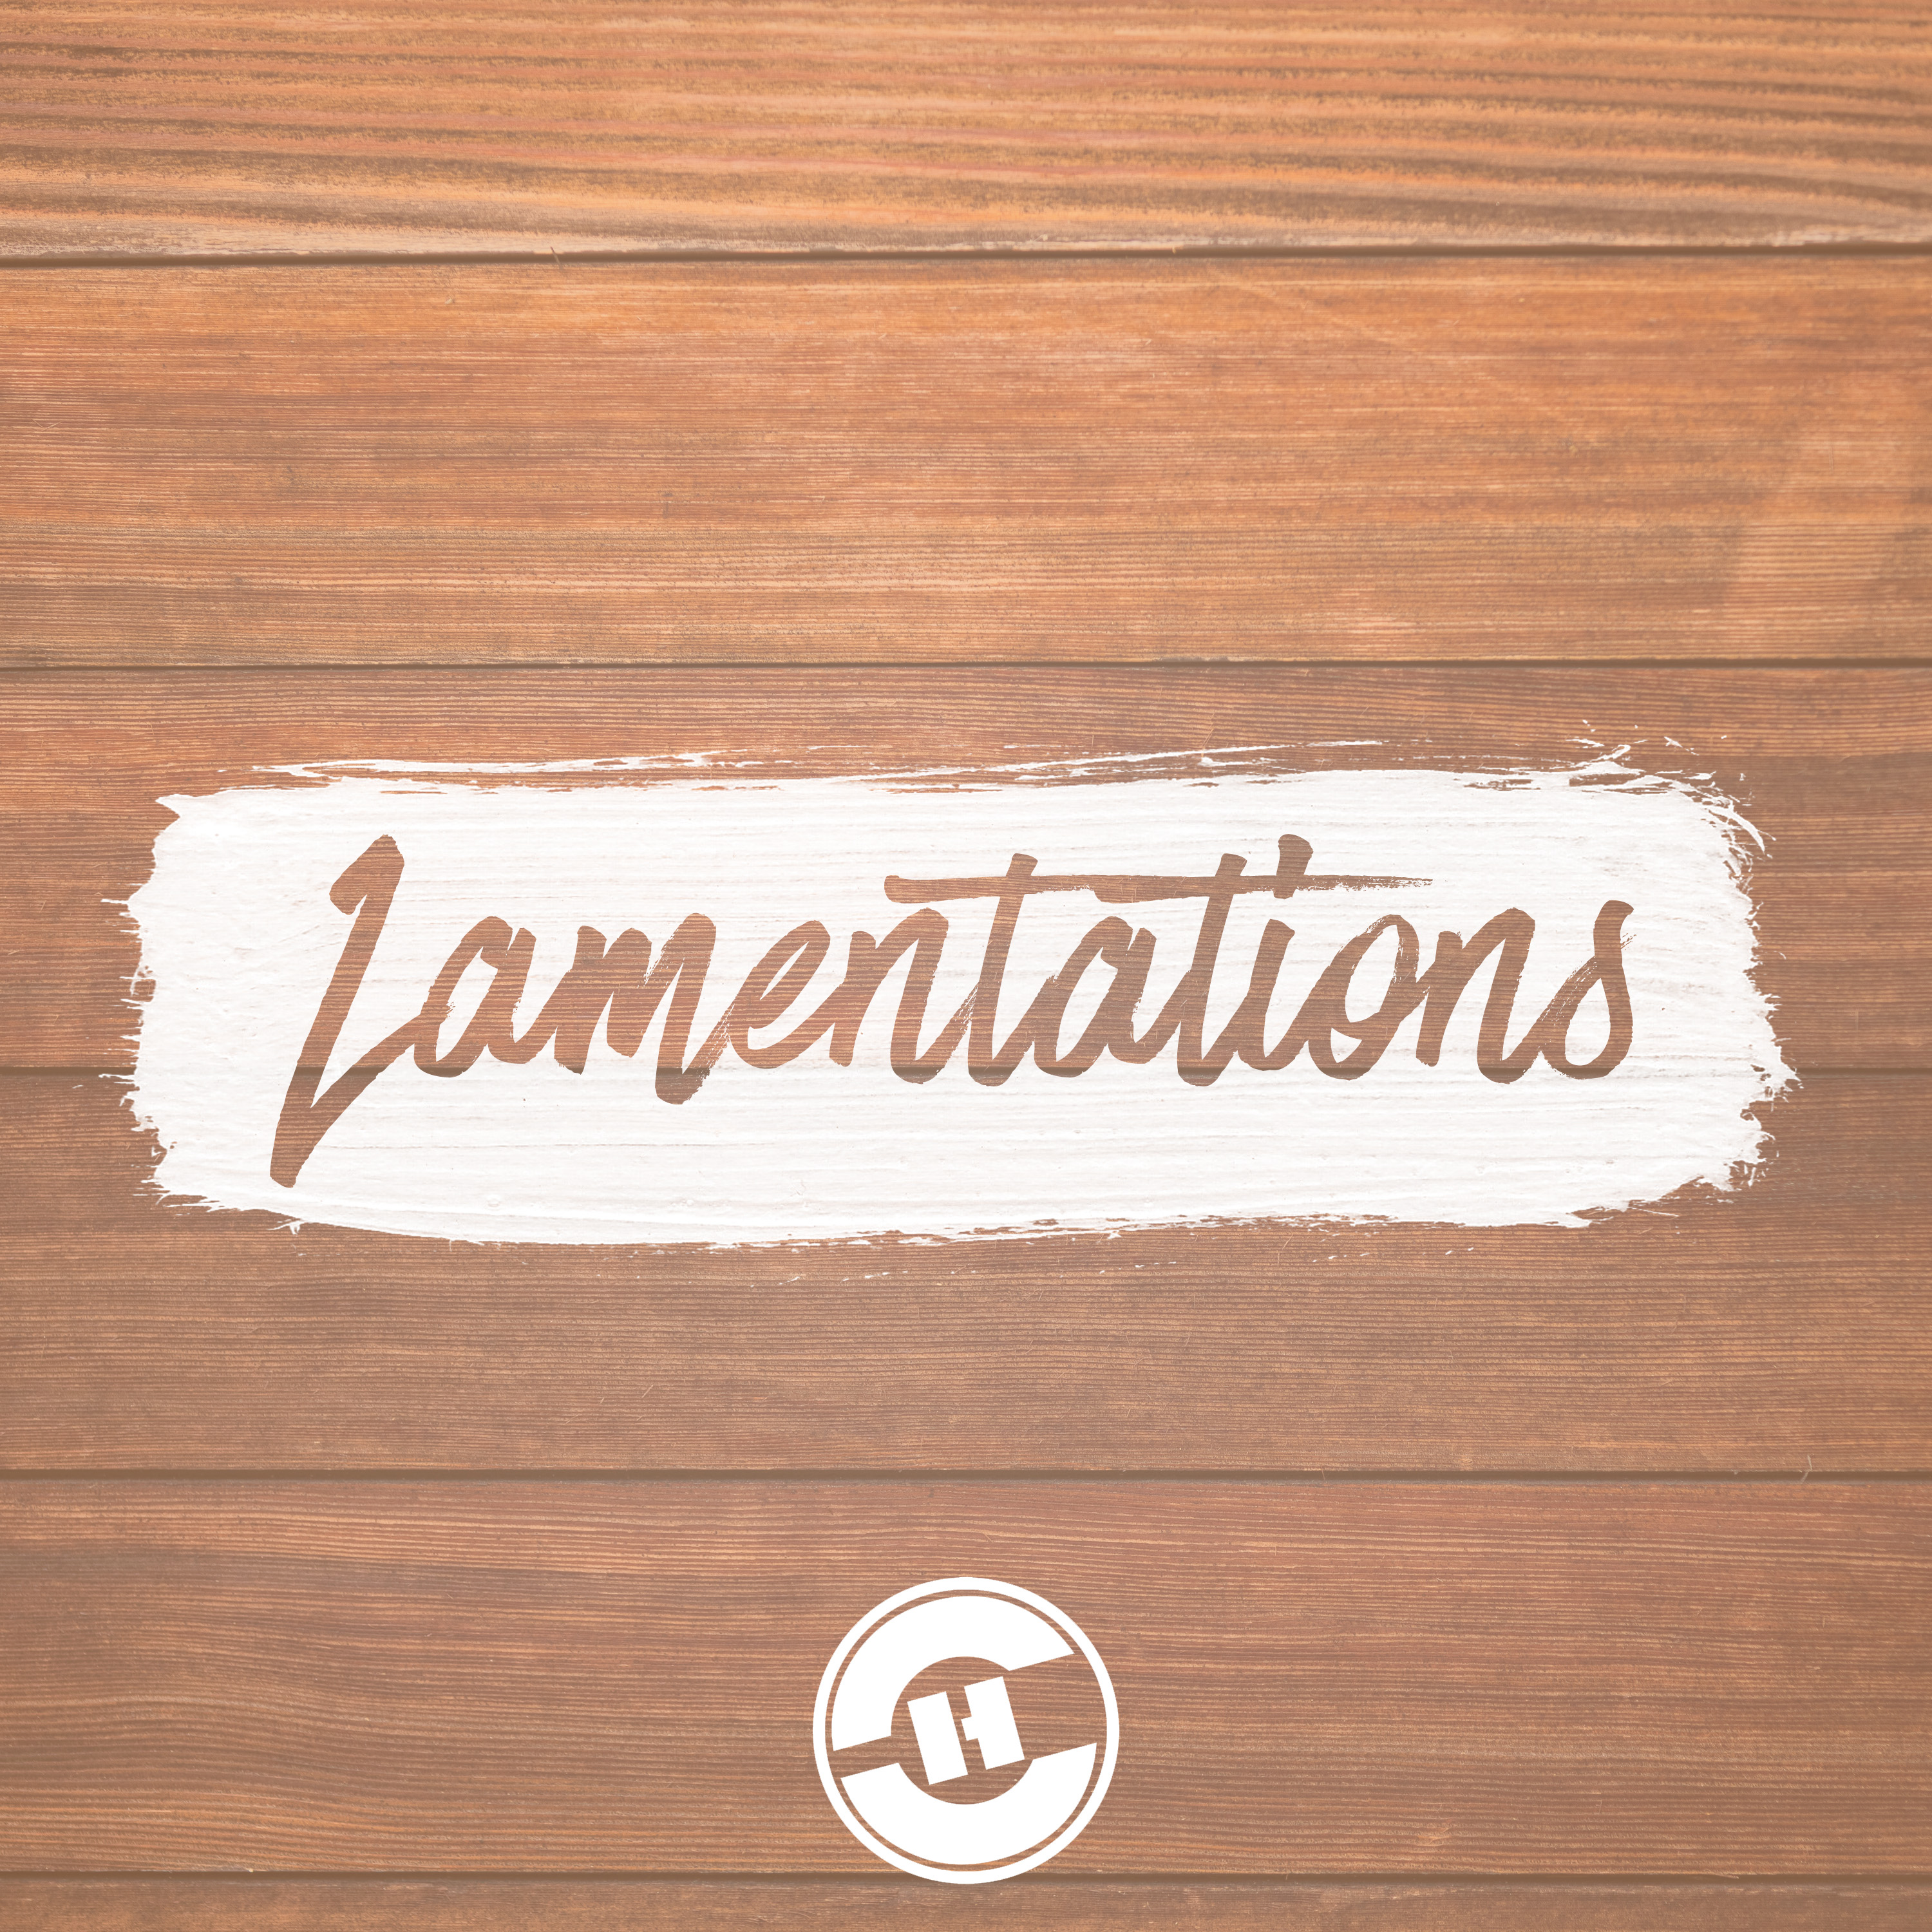 Lamentations Podcast